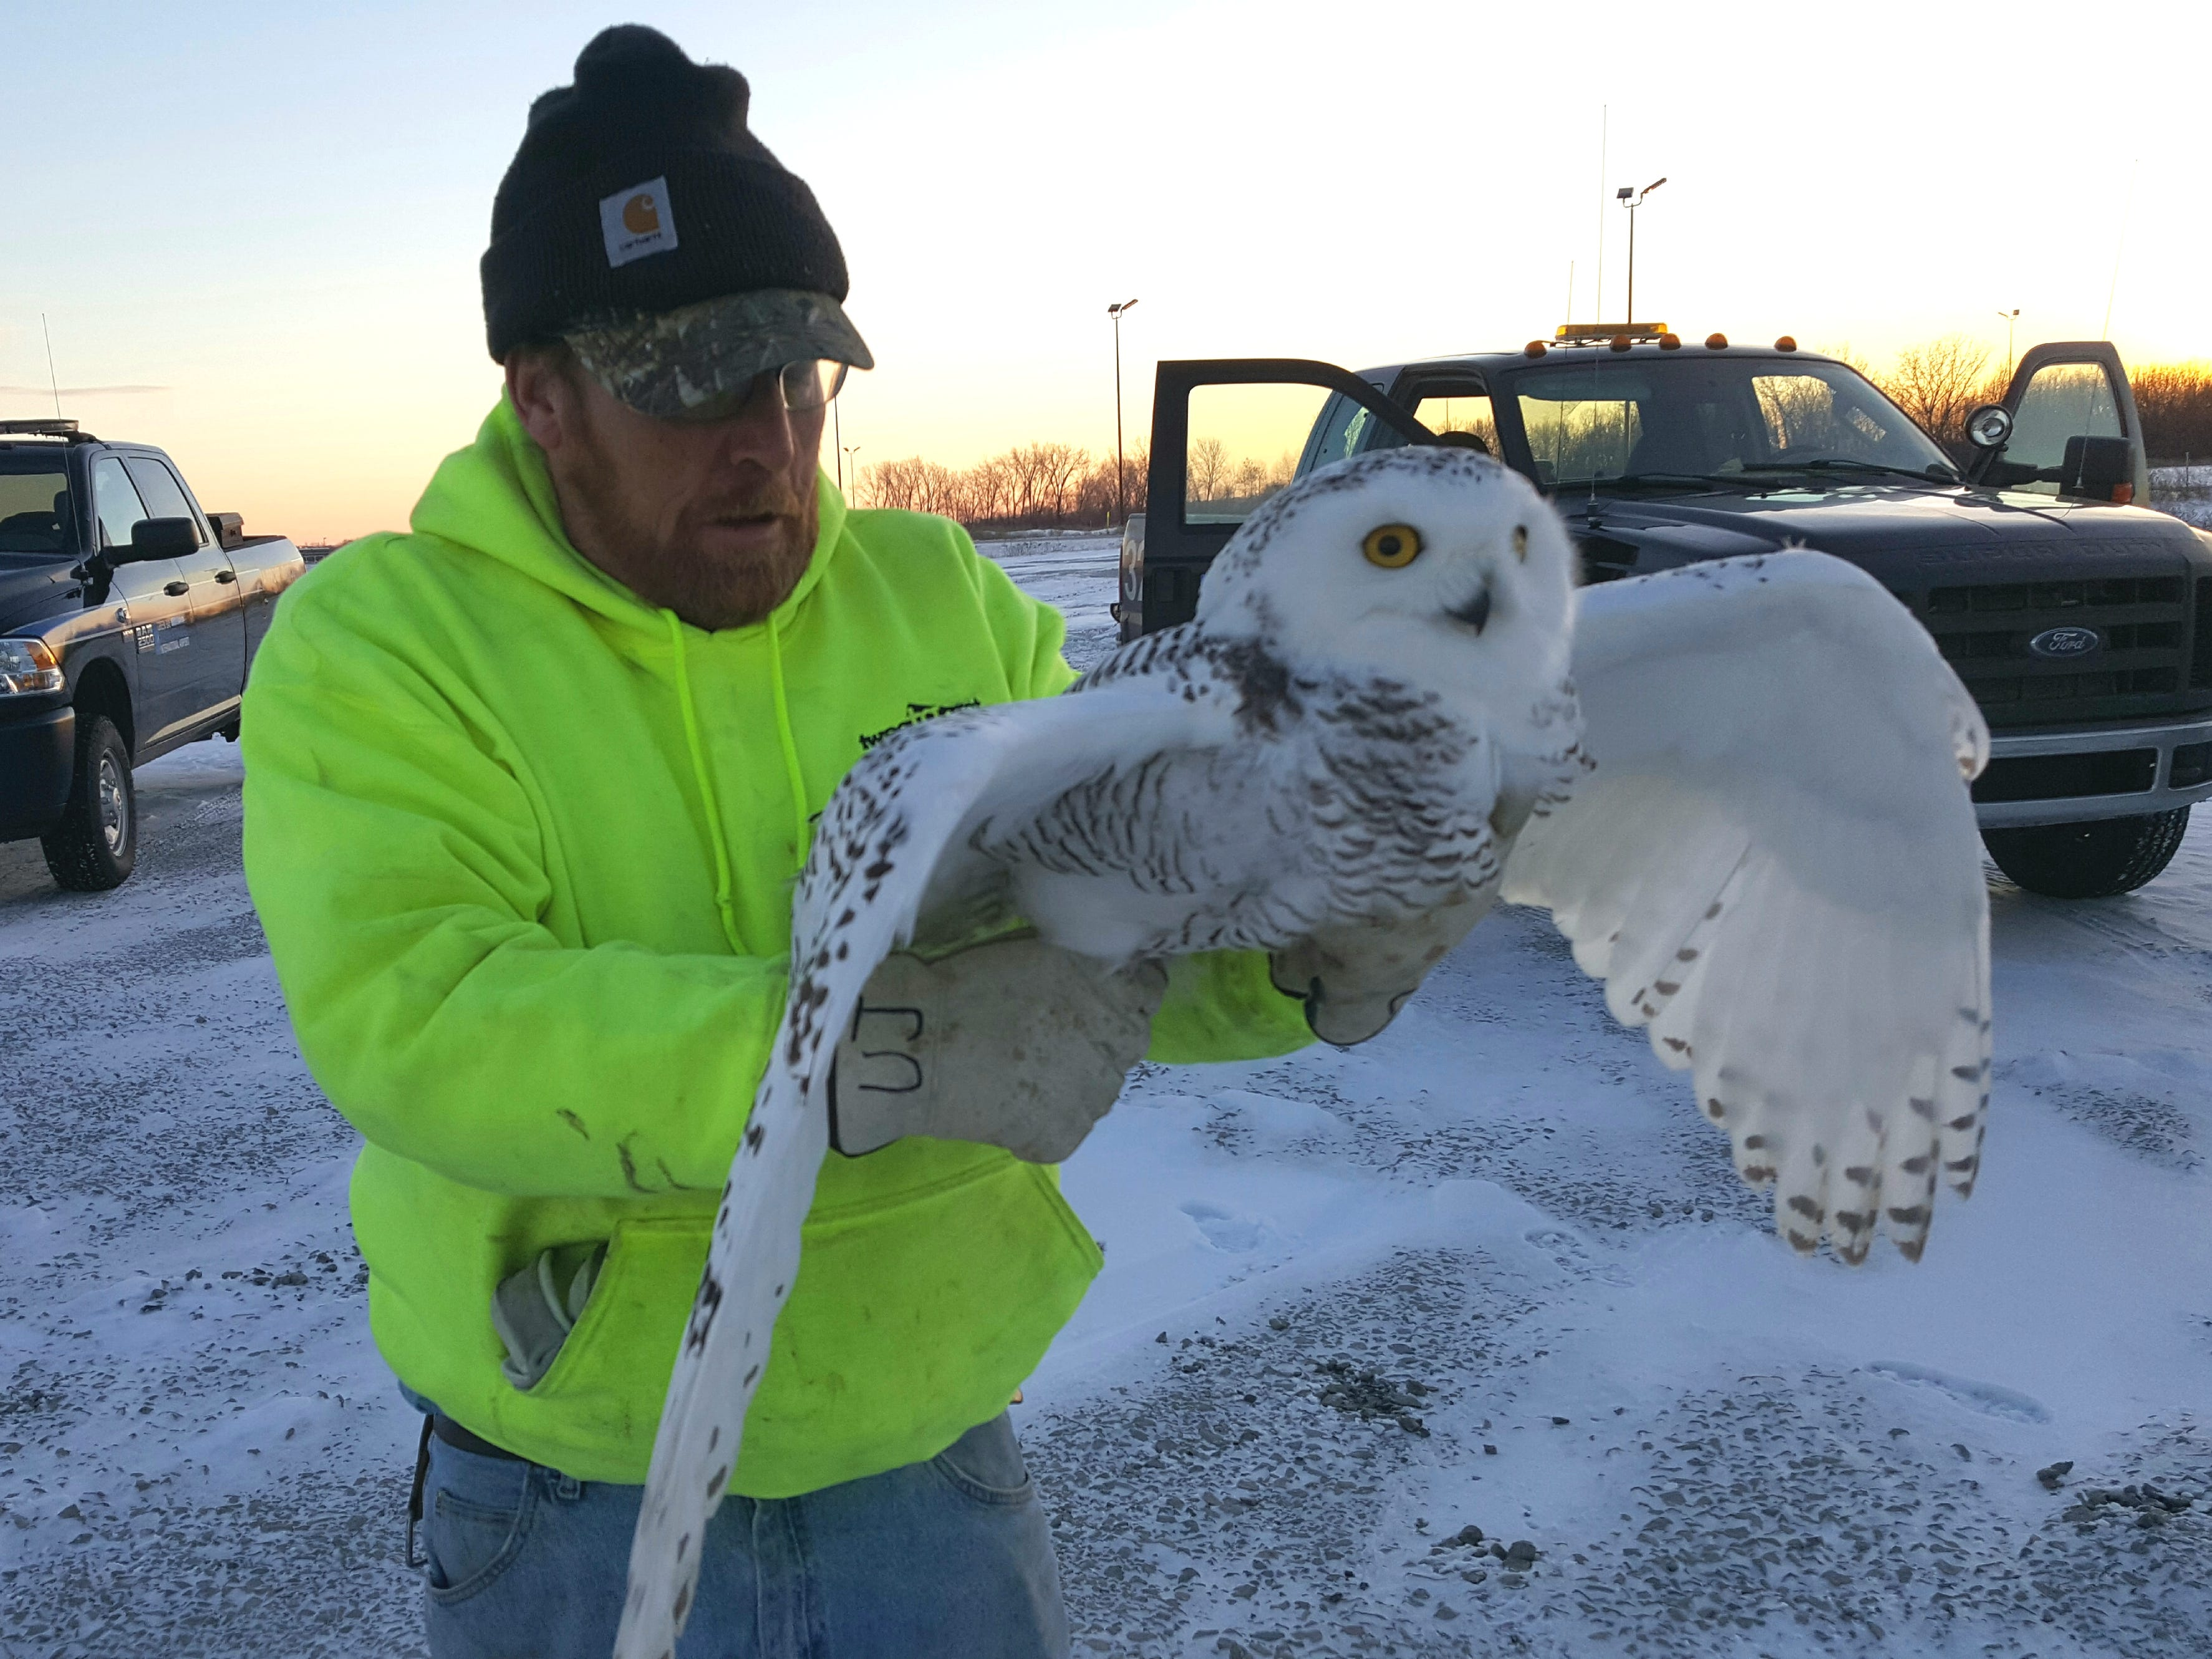 Frank Ujazdowski, volunteer falconer for Project SOAR, looks over a snowy owl he captured last month at Green Bay Austin Straubel International Airport. Project SOAR's goal is to safely capture and relocate snowy owls and other raptors who take a liking to airport grounds during winter months.